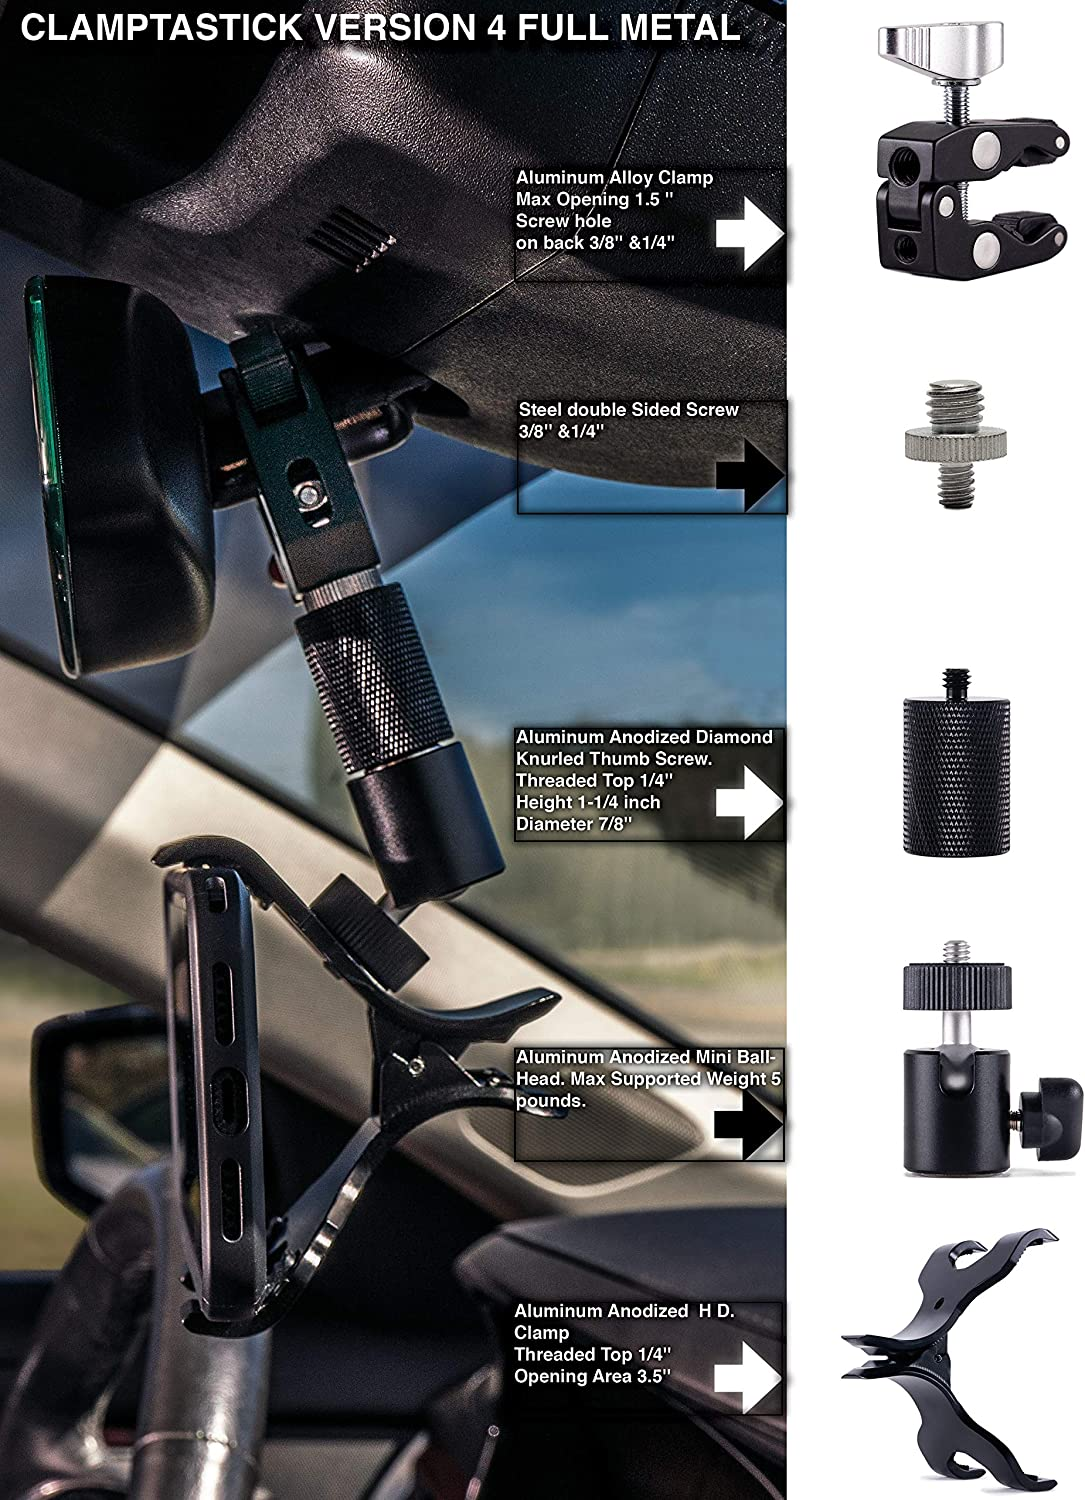 Black - Version 4 Full Metal Universal Cell Phone Holder for mounting on Rearview Mirror Compatible with Mobile iOS Devices Clamptastick ! Android Smartphone GPS and More.